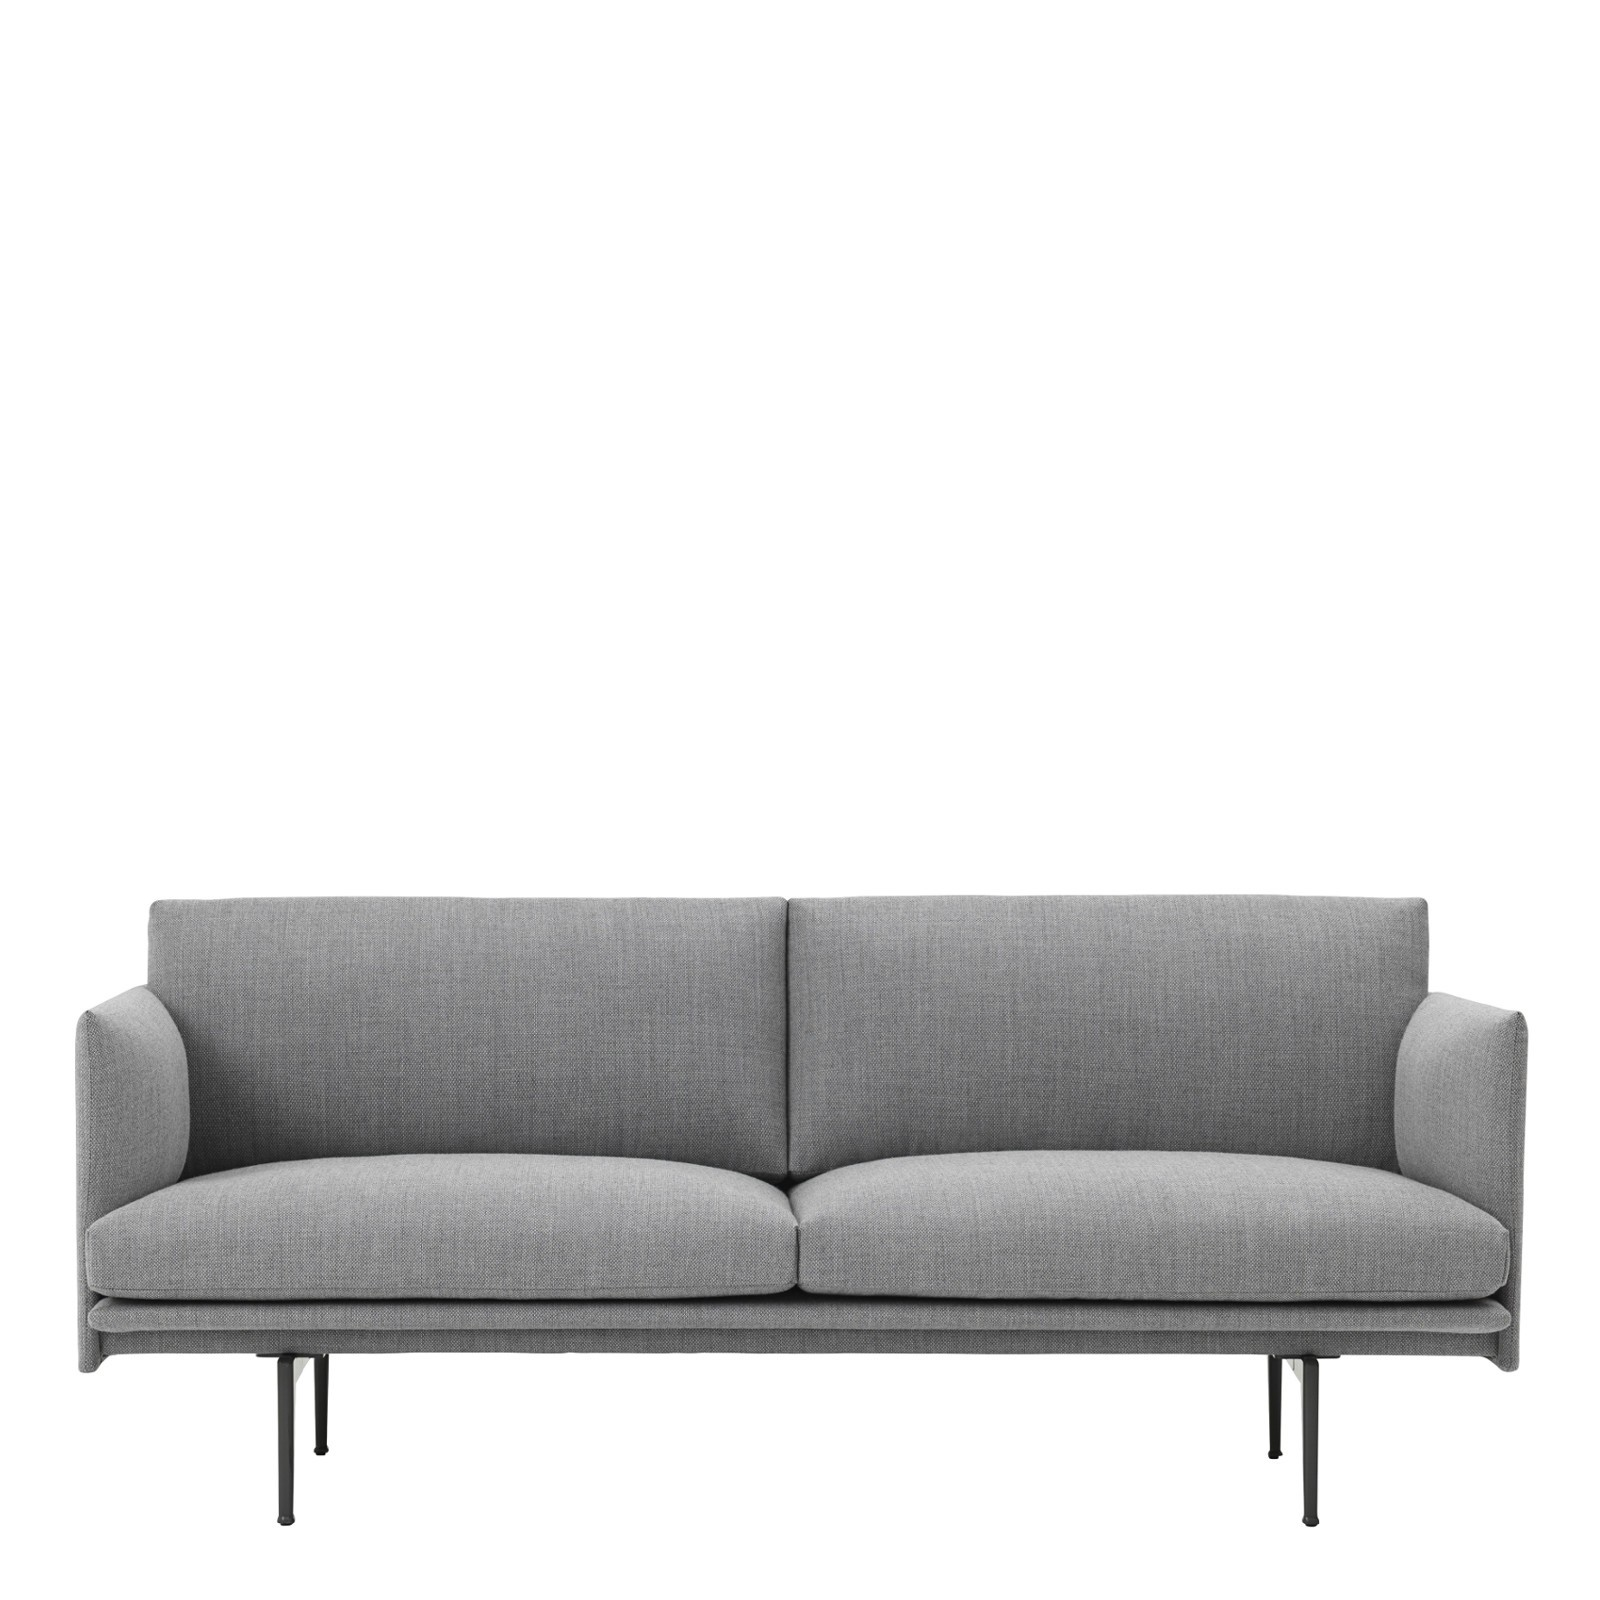 Full Size of Muuto Sofa Connect Pris Compose 2 Seater Outline Dimensions Review Sofabord Xl Airy Large Uk Oslo Rest Sale 3 Sitzer Online Kaufen Found4you Goodlife Sofa Muuto Sofa